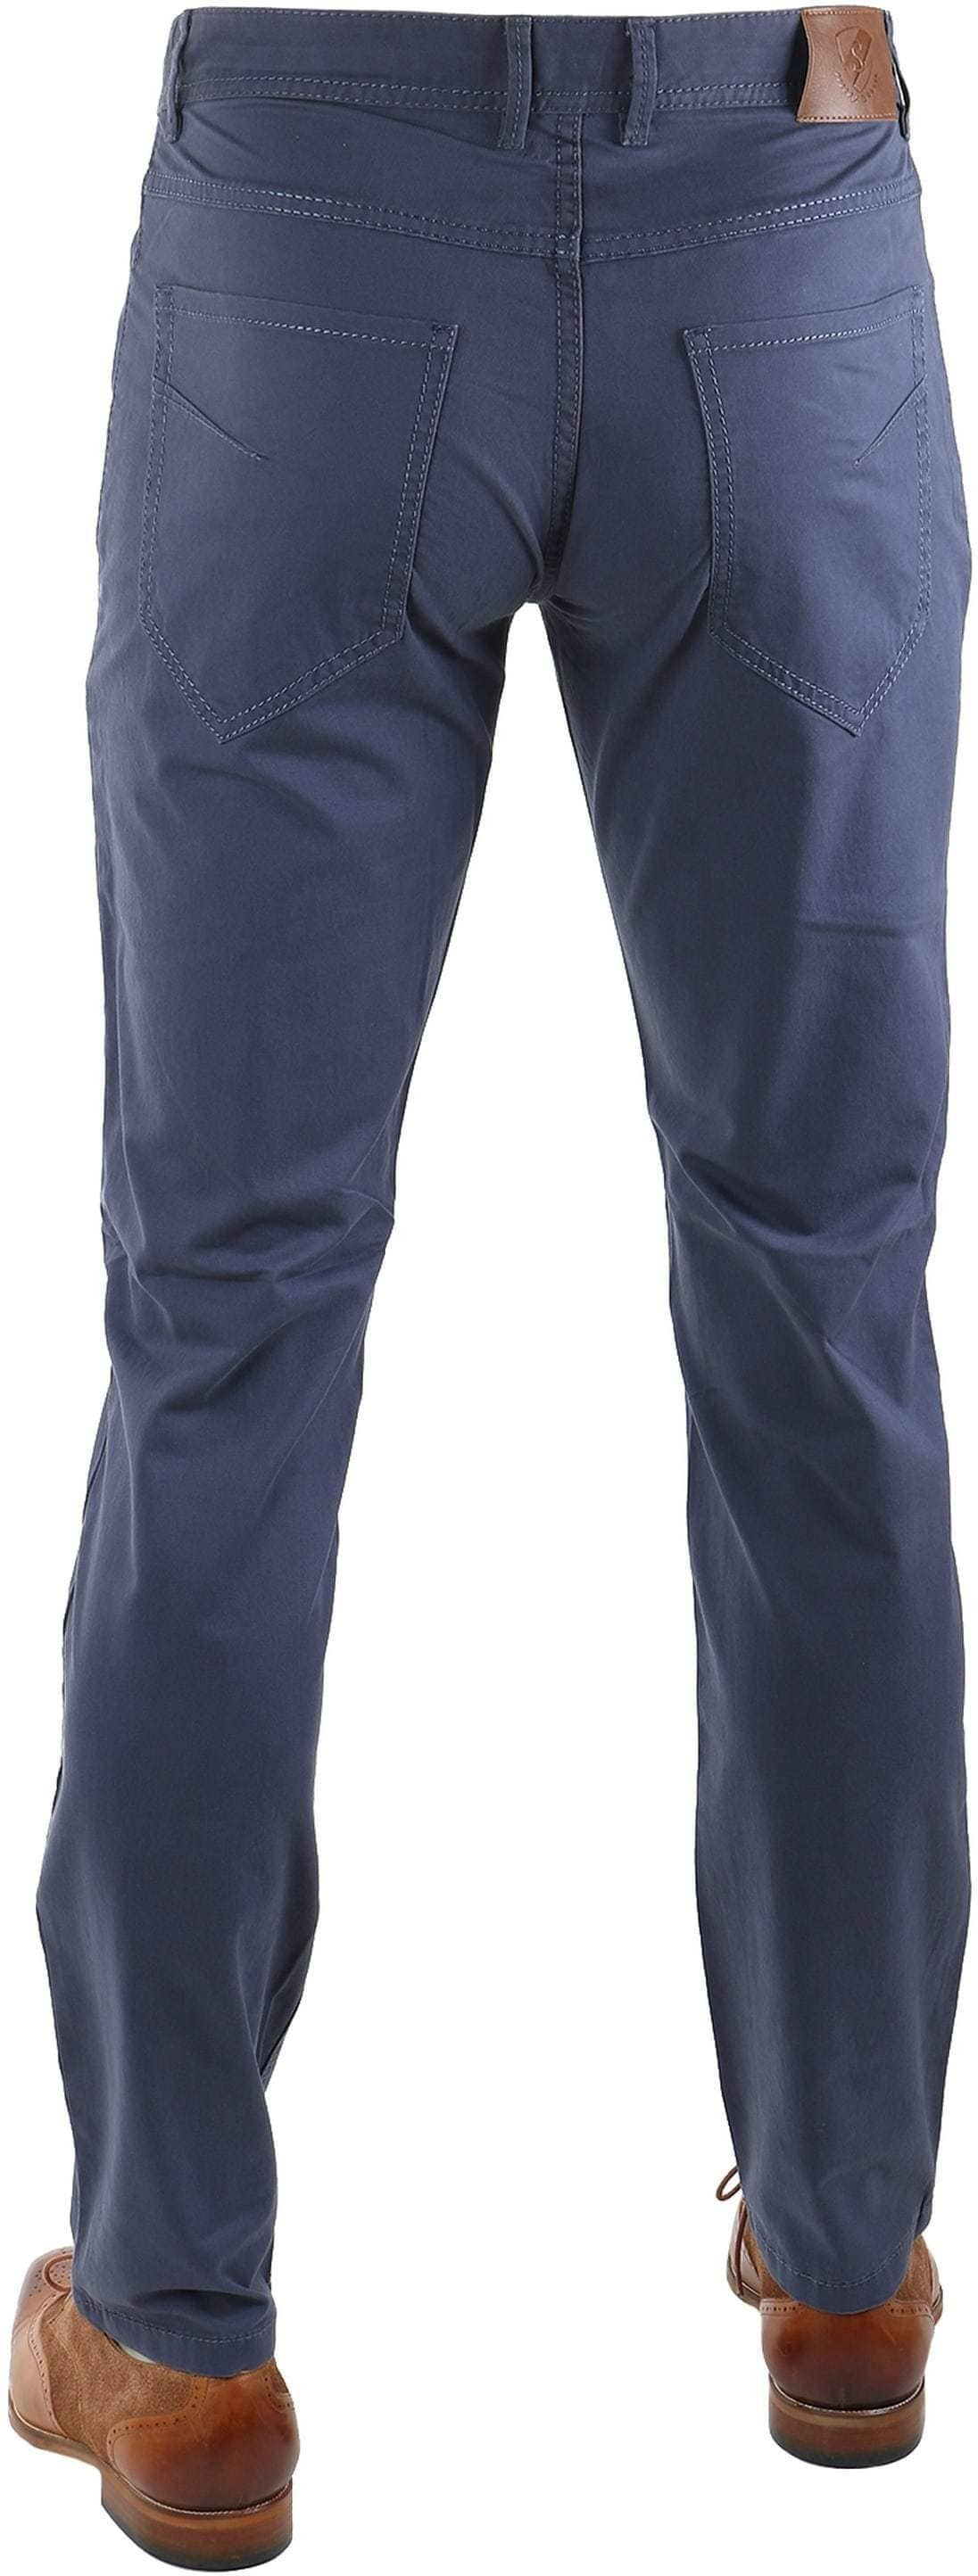 Suitable Barrie Broek Donkerblauw foto 1